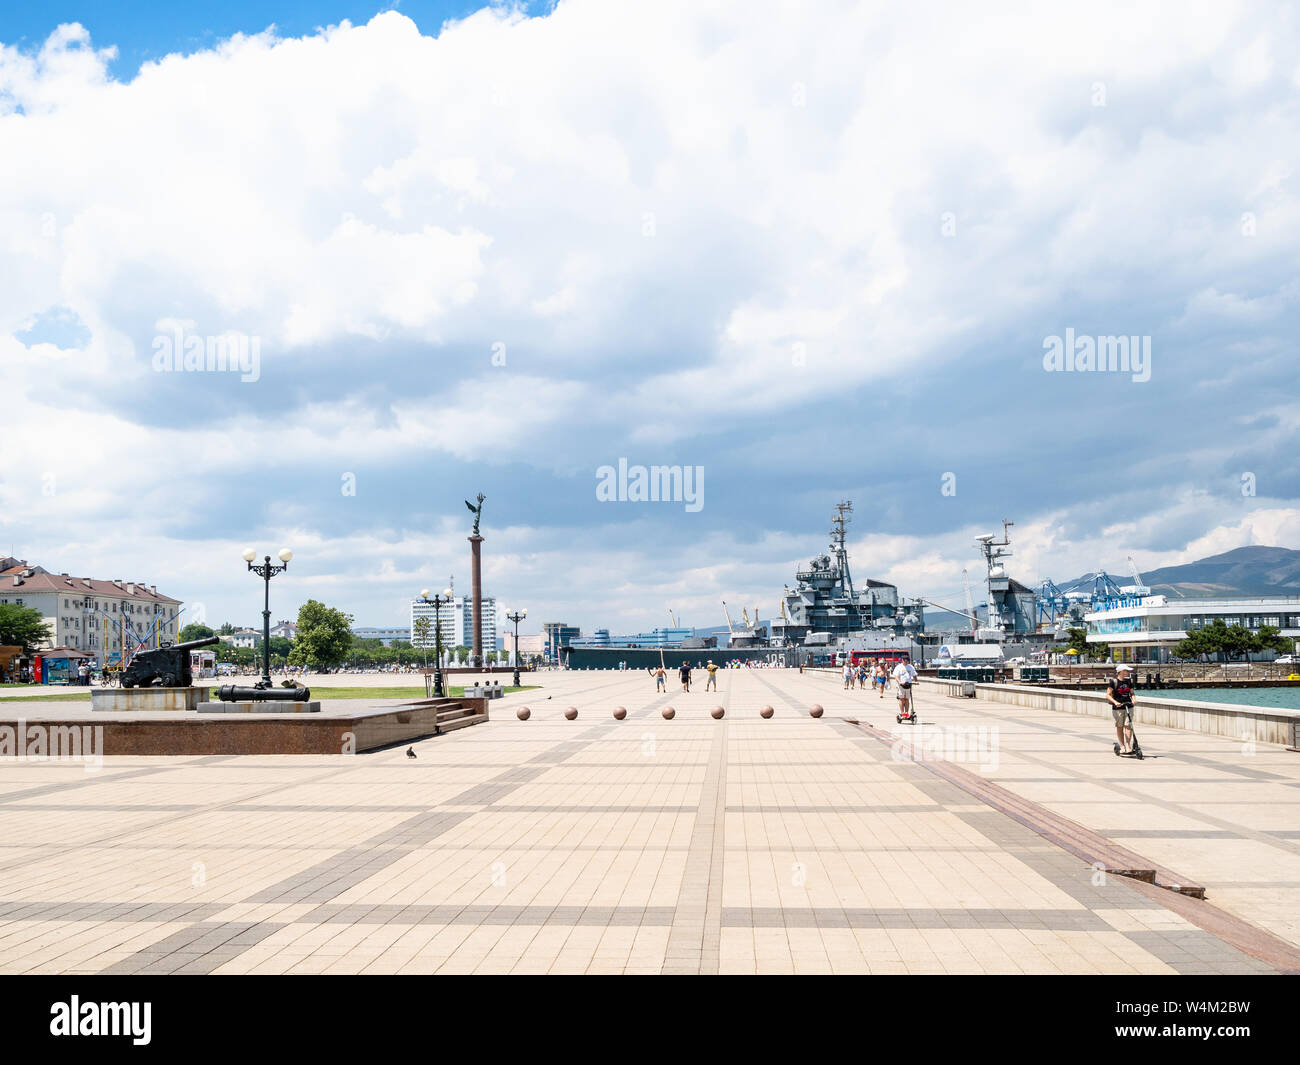 Novorossiysk Russia July 7 2019 People On Forum Square Of Admiral Serebryakov Embankment In Novorossiysk Novorossiysk Is City In Krasnodar Krai Stock Photo Alamy